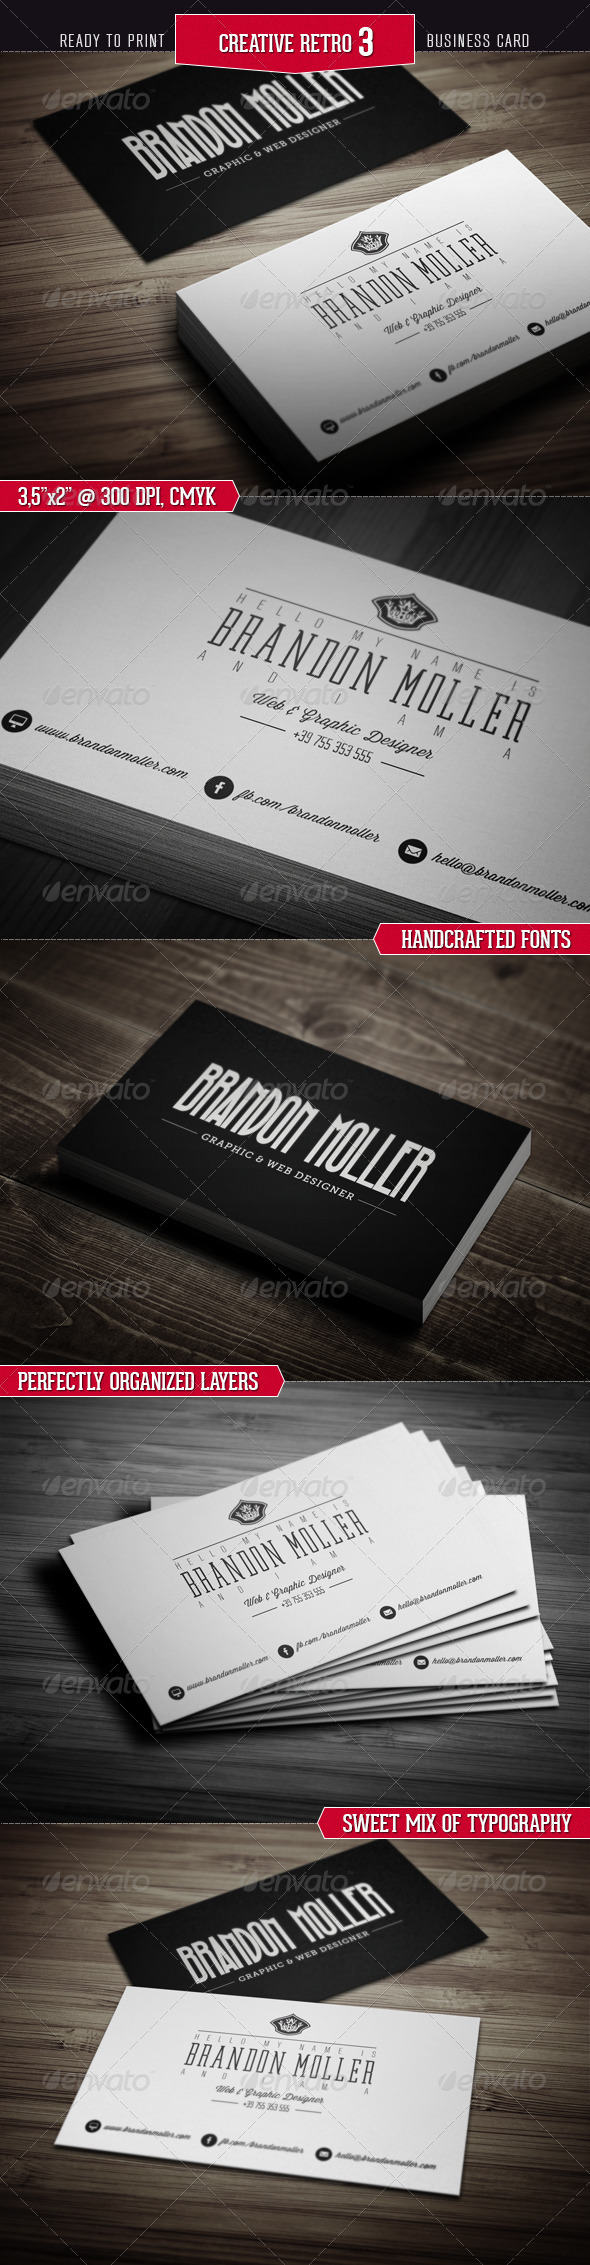 Creative Retro Business Card 3 - Creative Business Cards